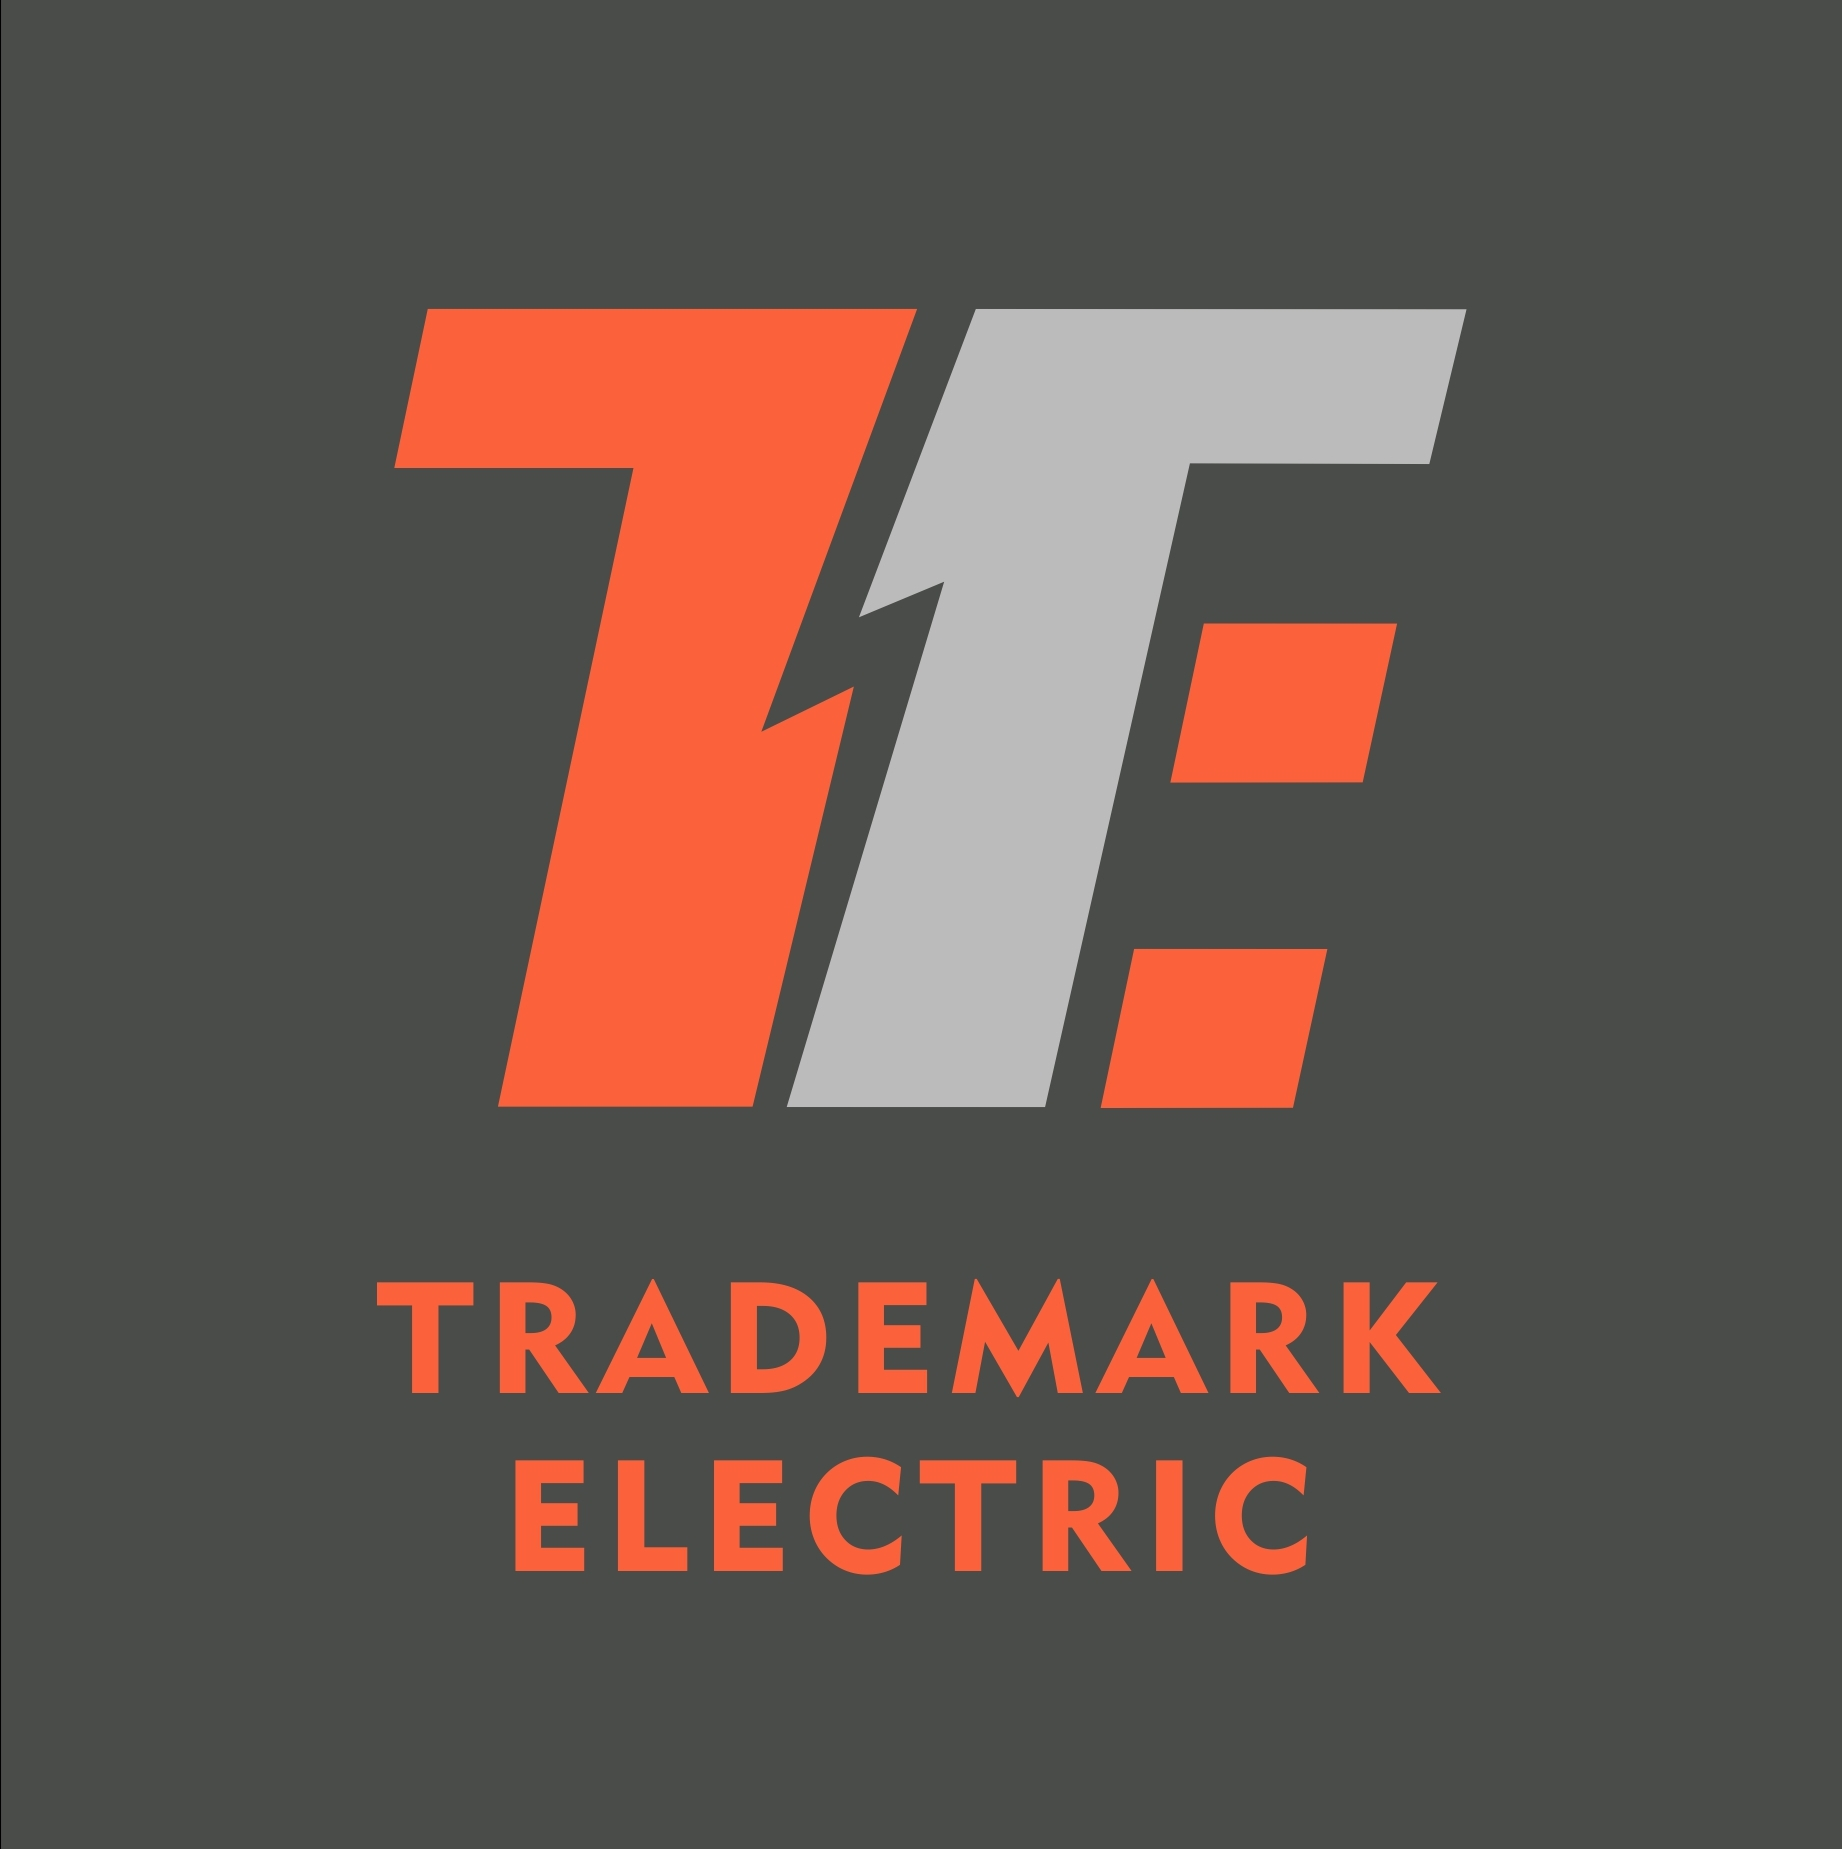 Trademark_Electric.jpg